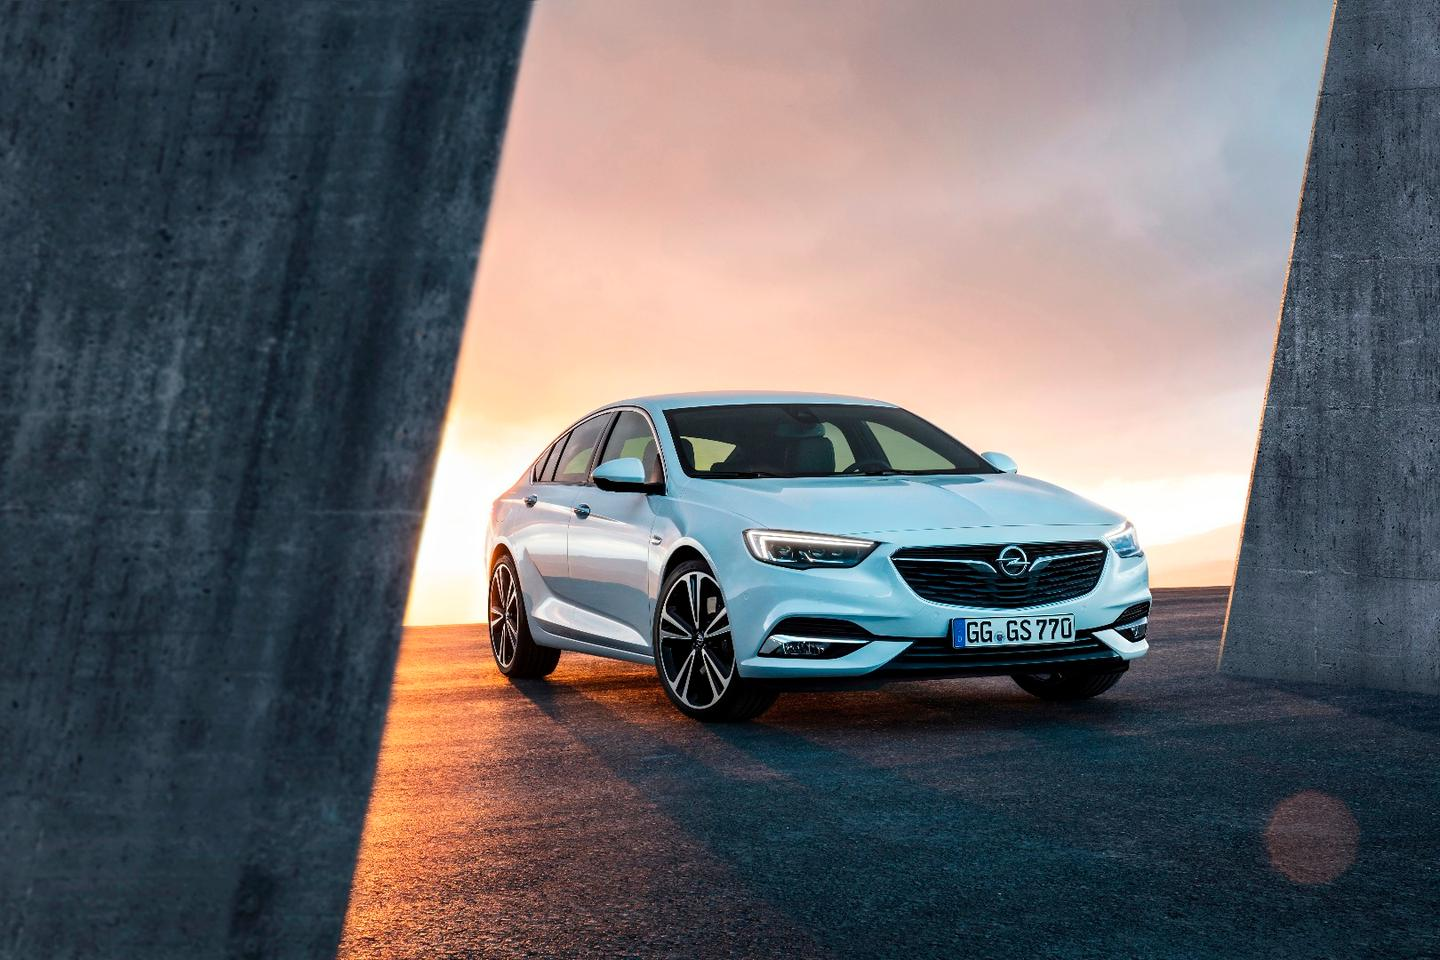 The new Insignia Grand Sport is bigger and lighter than the car it replaces